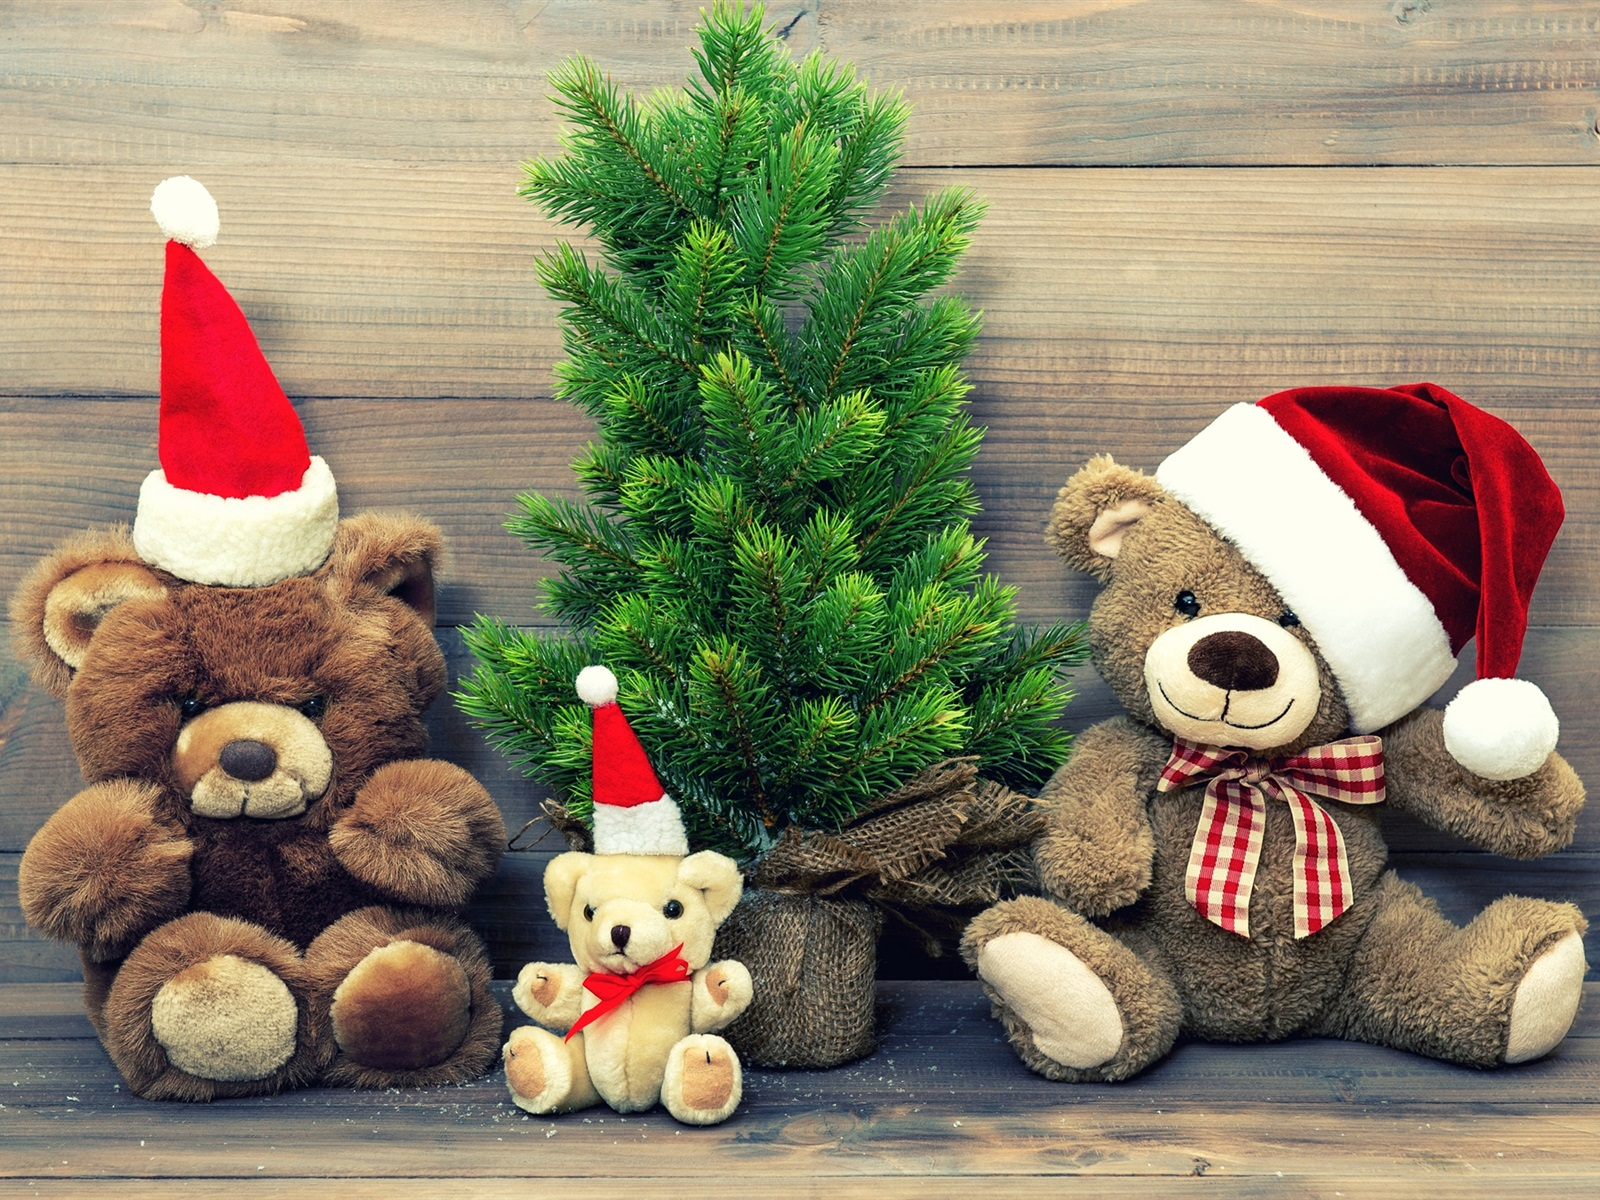 Christmas Teddy Bear Wallpaper: Merry Christmas, Hat, Decoration, Teddy Bear Wallpaper